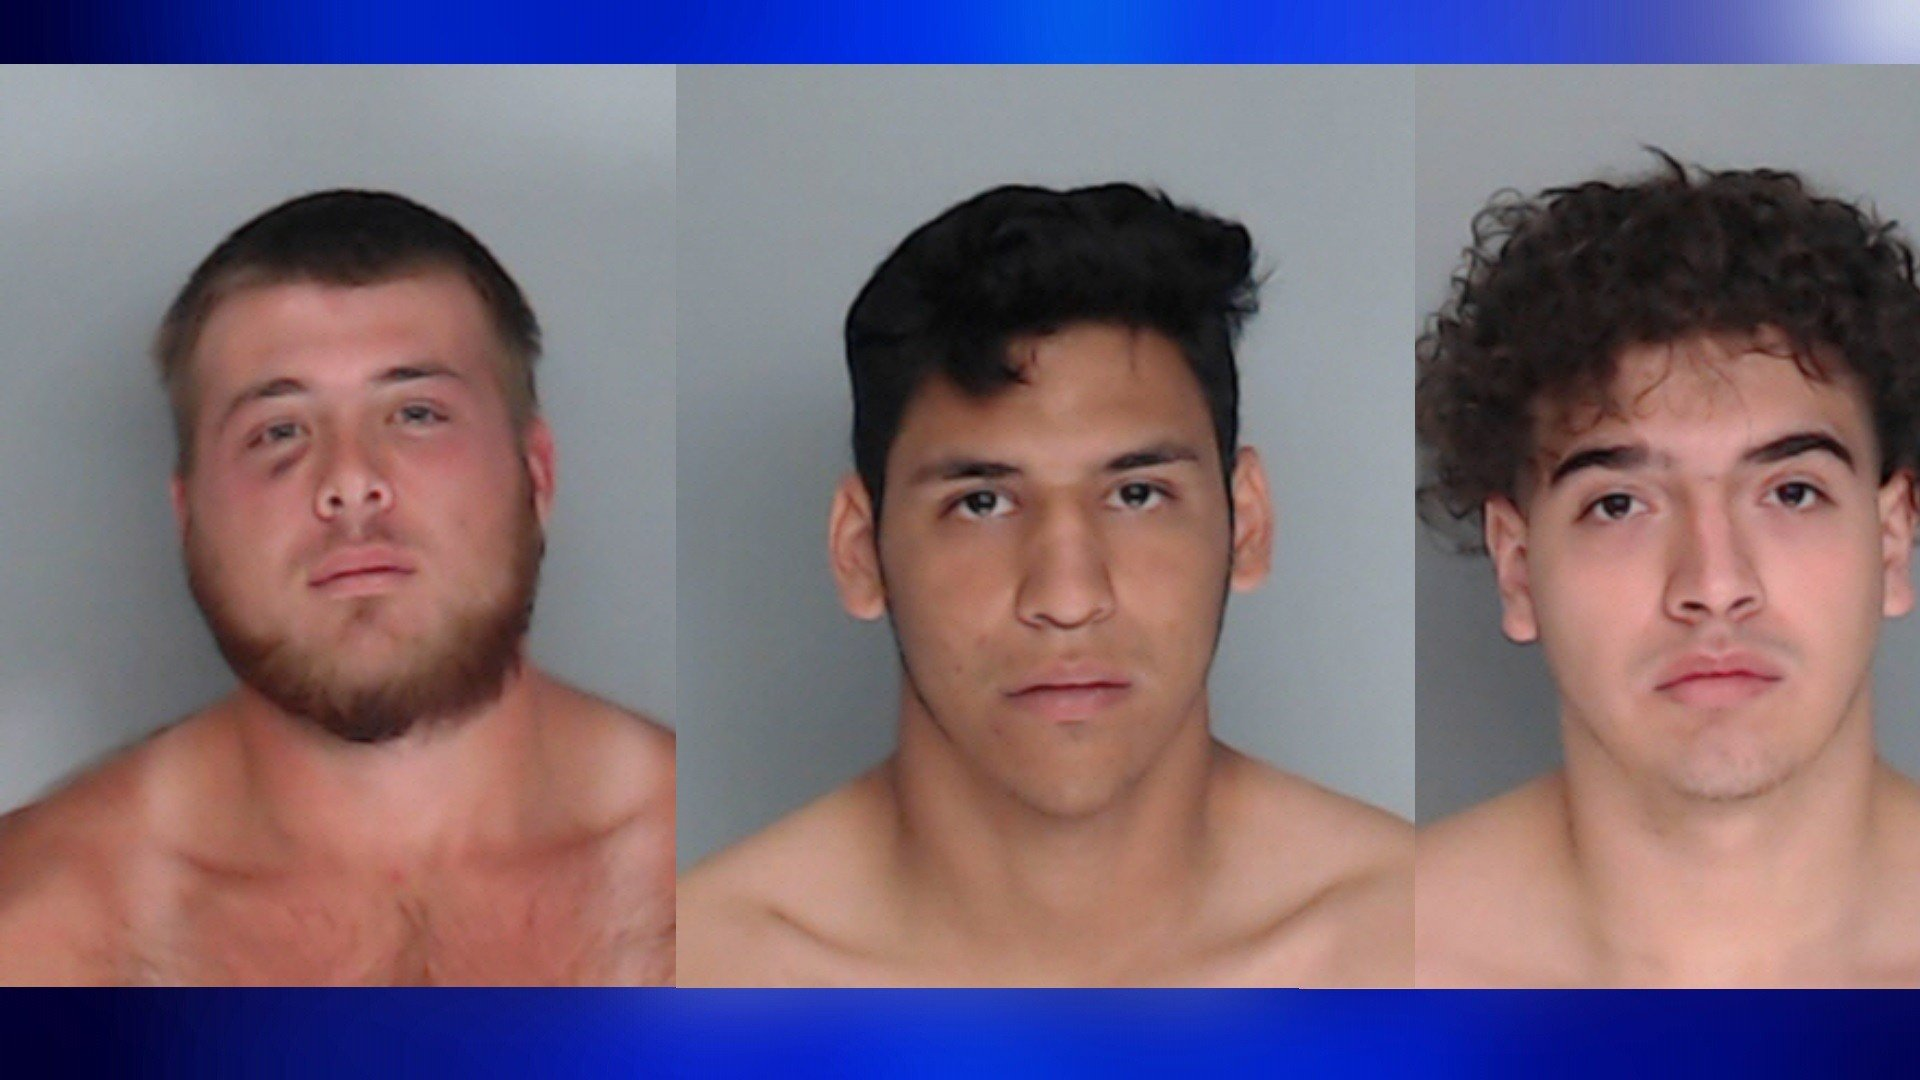 Left to right: Tyler Farmer, James Lockhart and Gavin Escoto. All charged with murder.